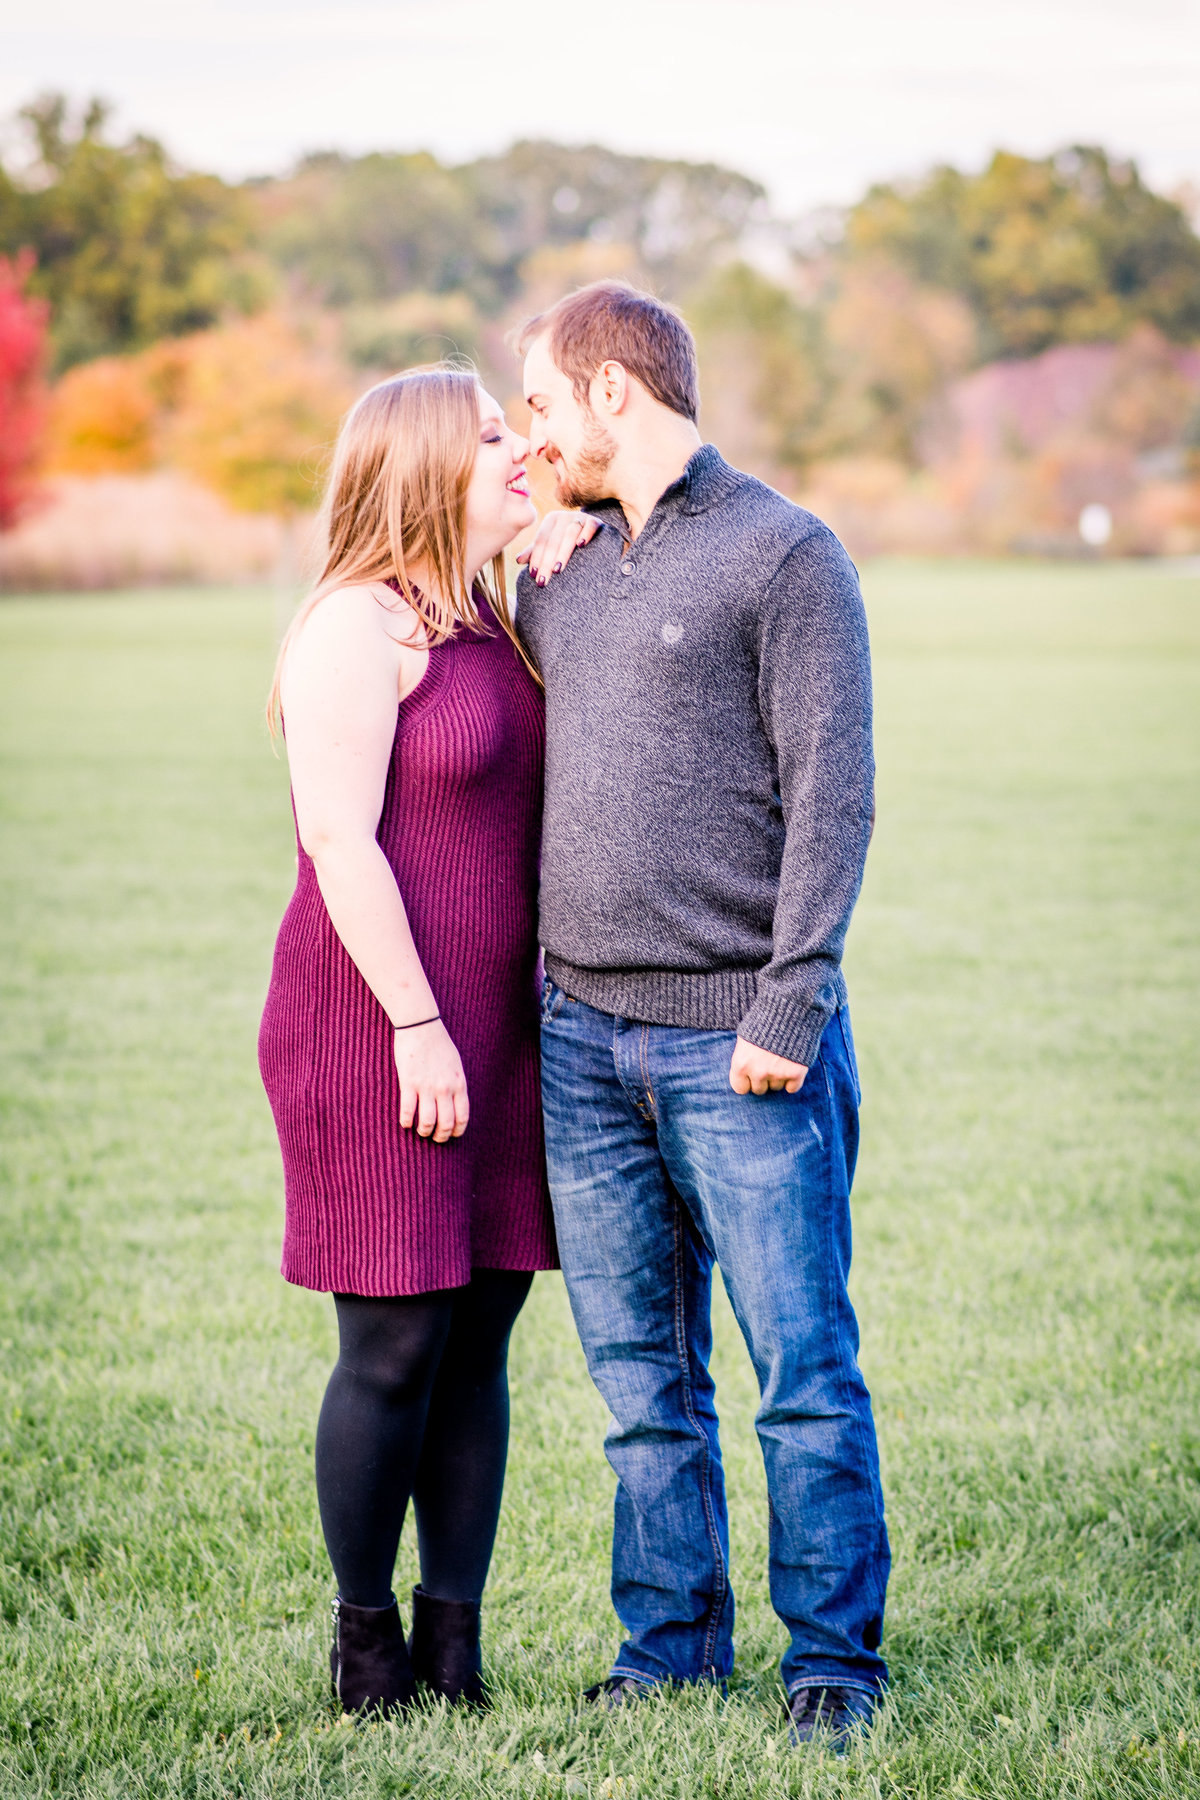 Engagement-Photography-Couples-Photography-Portrait-Photography-7